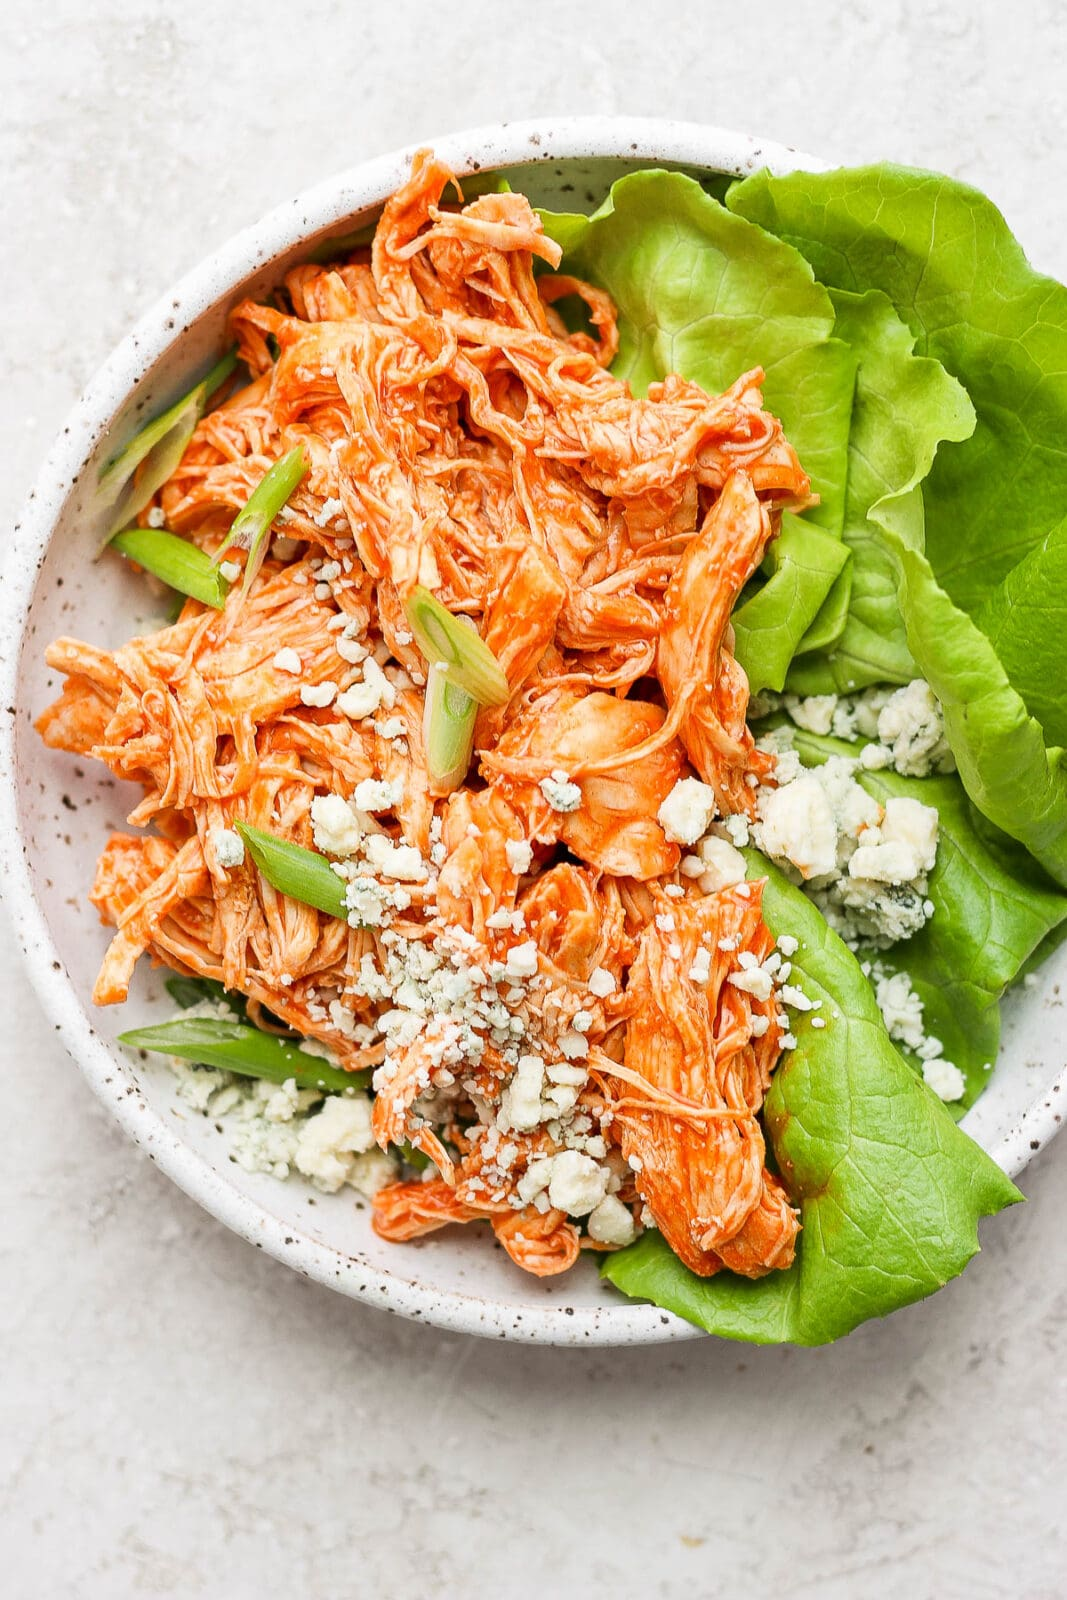 Plate with shredded buffalo chicken on butter lettuce with green onions and blue cheese crumbles.